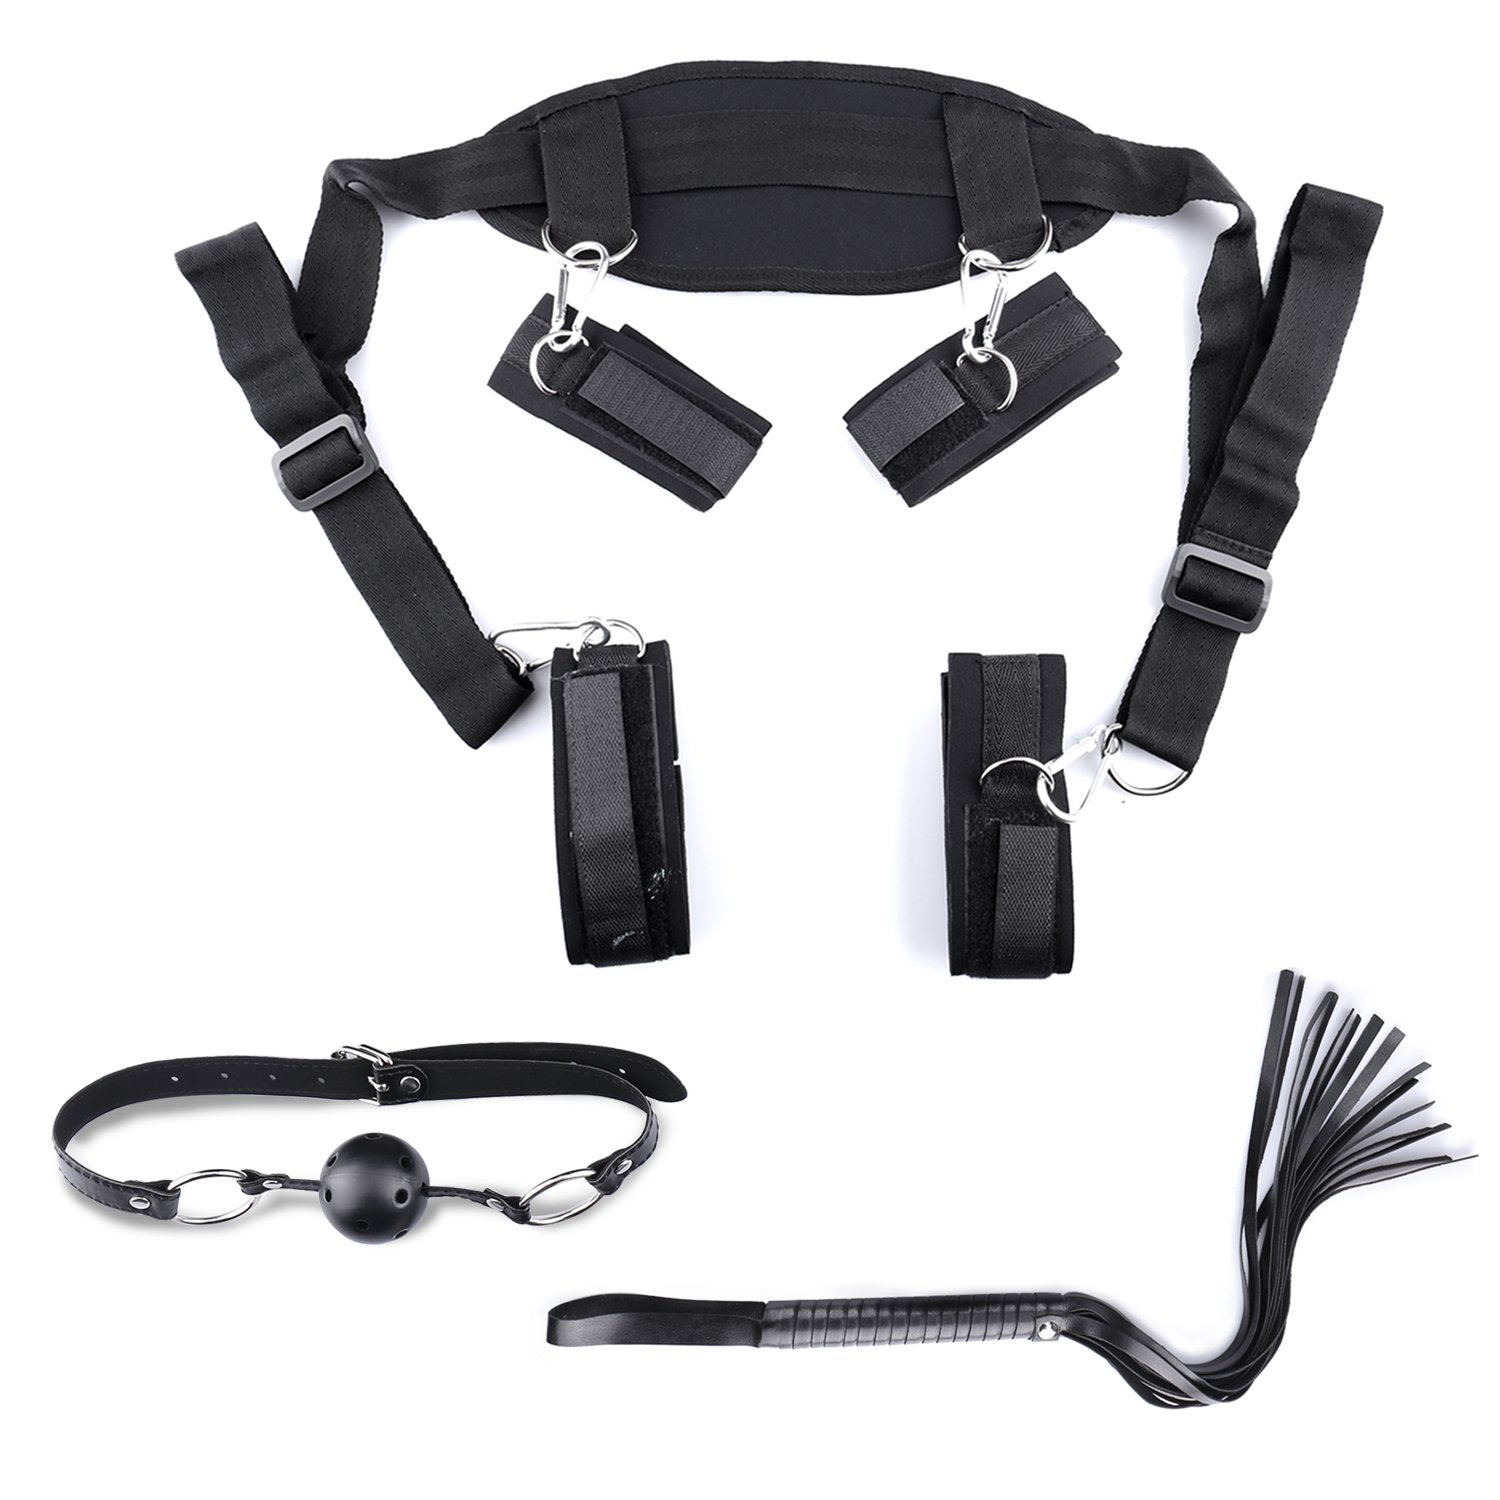 Bed Restraints Sex Bondage Kit SM BDSM S&M Leg Restraint System with Handcuffs Ankle Cuffs Whips Ball Gag Adults Fetish Sex Toys Sex Restraining Sets Gifts for Couples Men Women by Popbbie (Image #6)